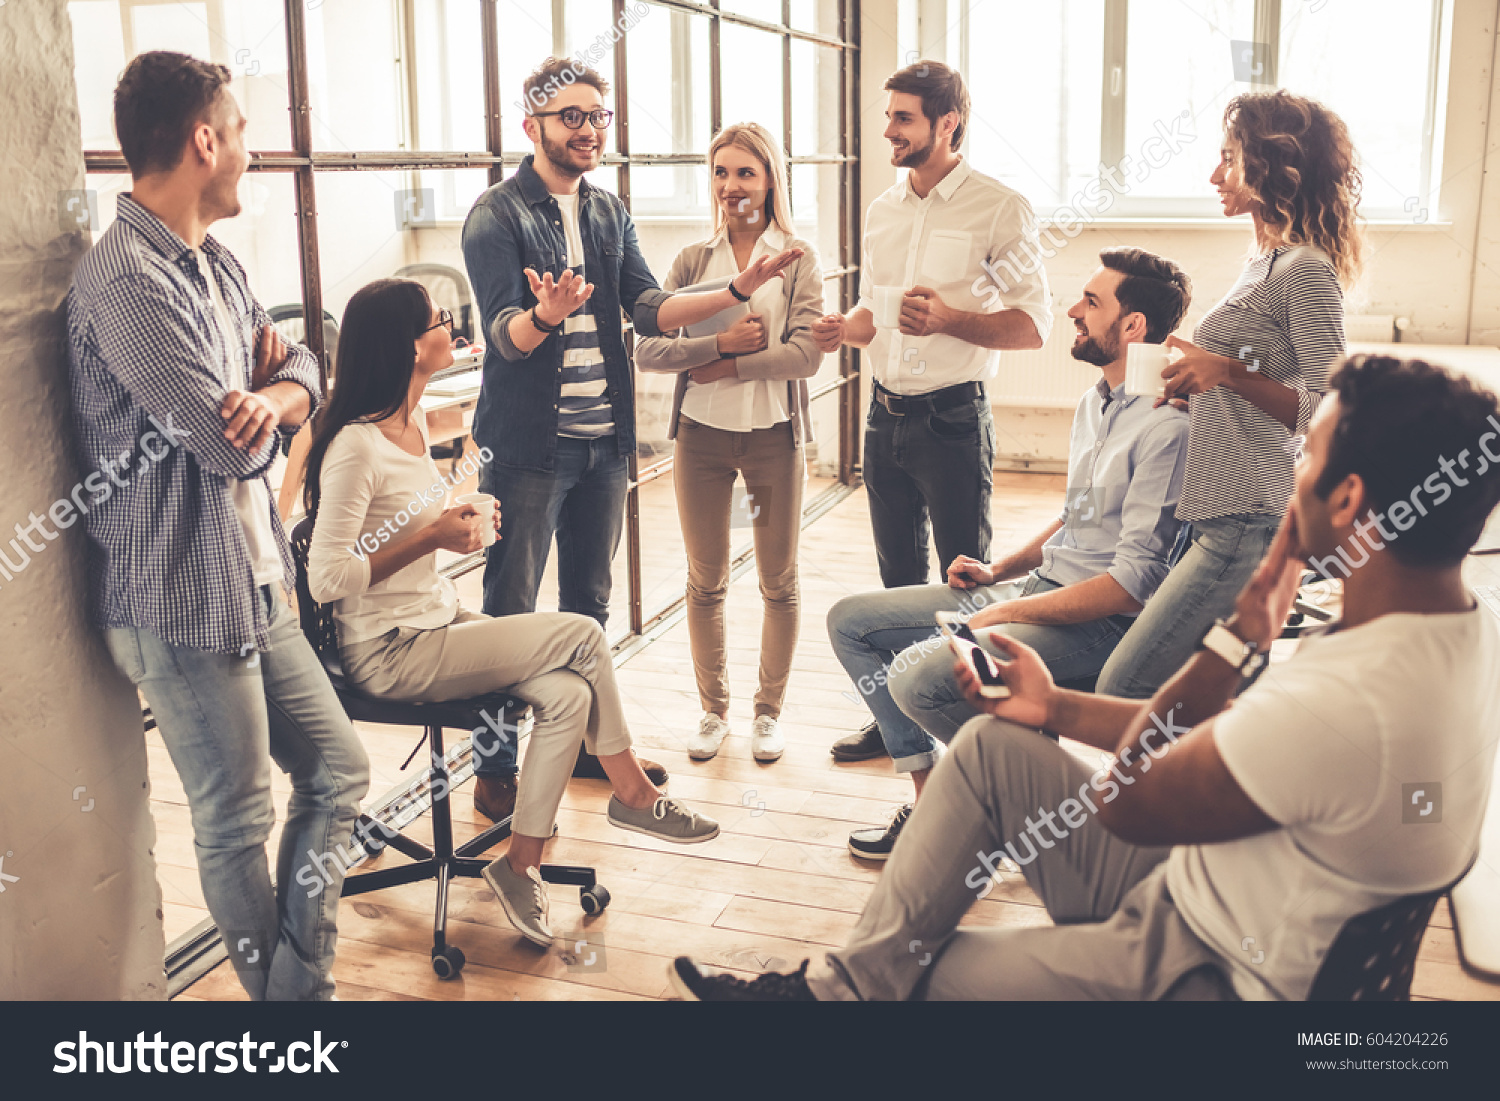 Successful young business people are talking and smiling during the coffee break in office